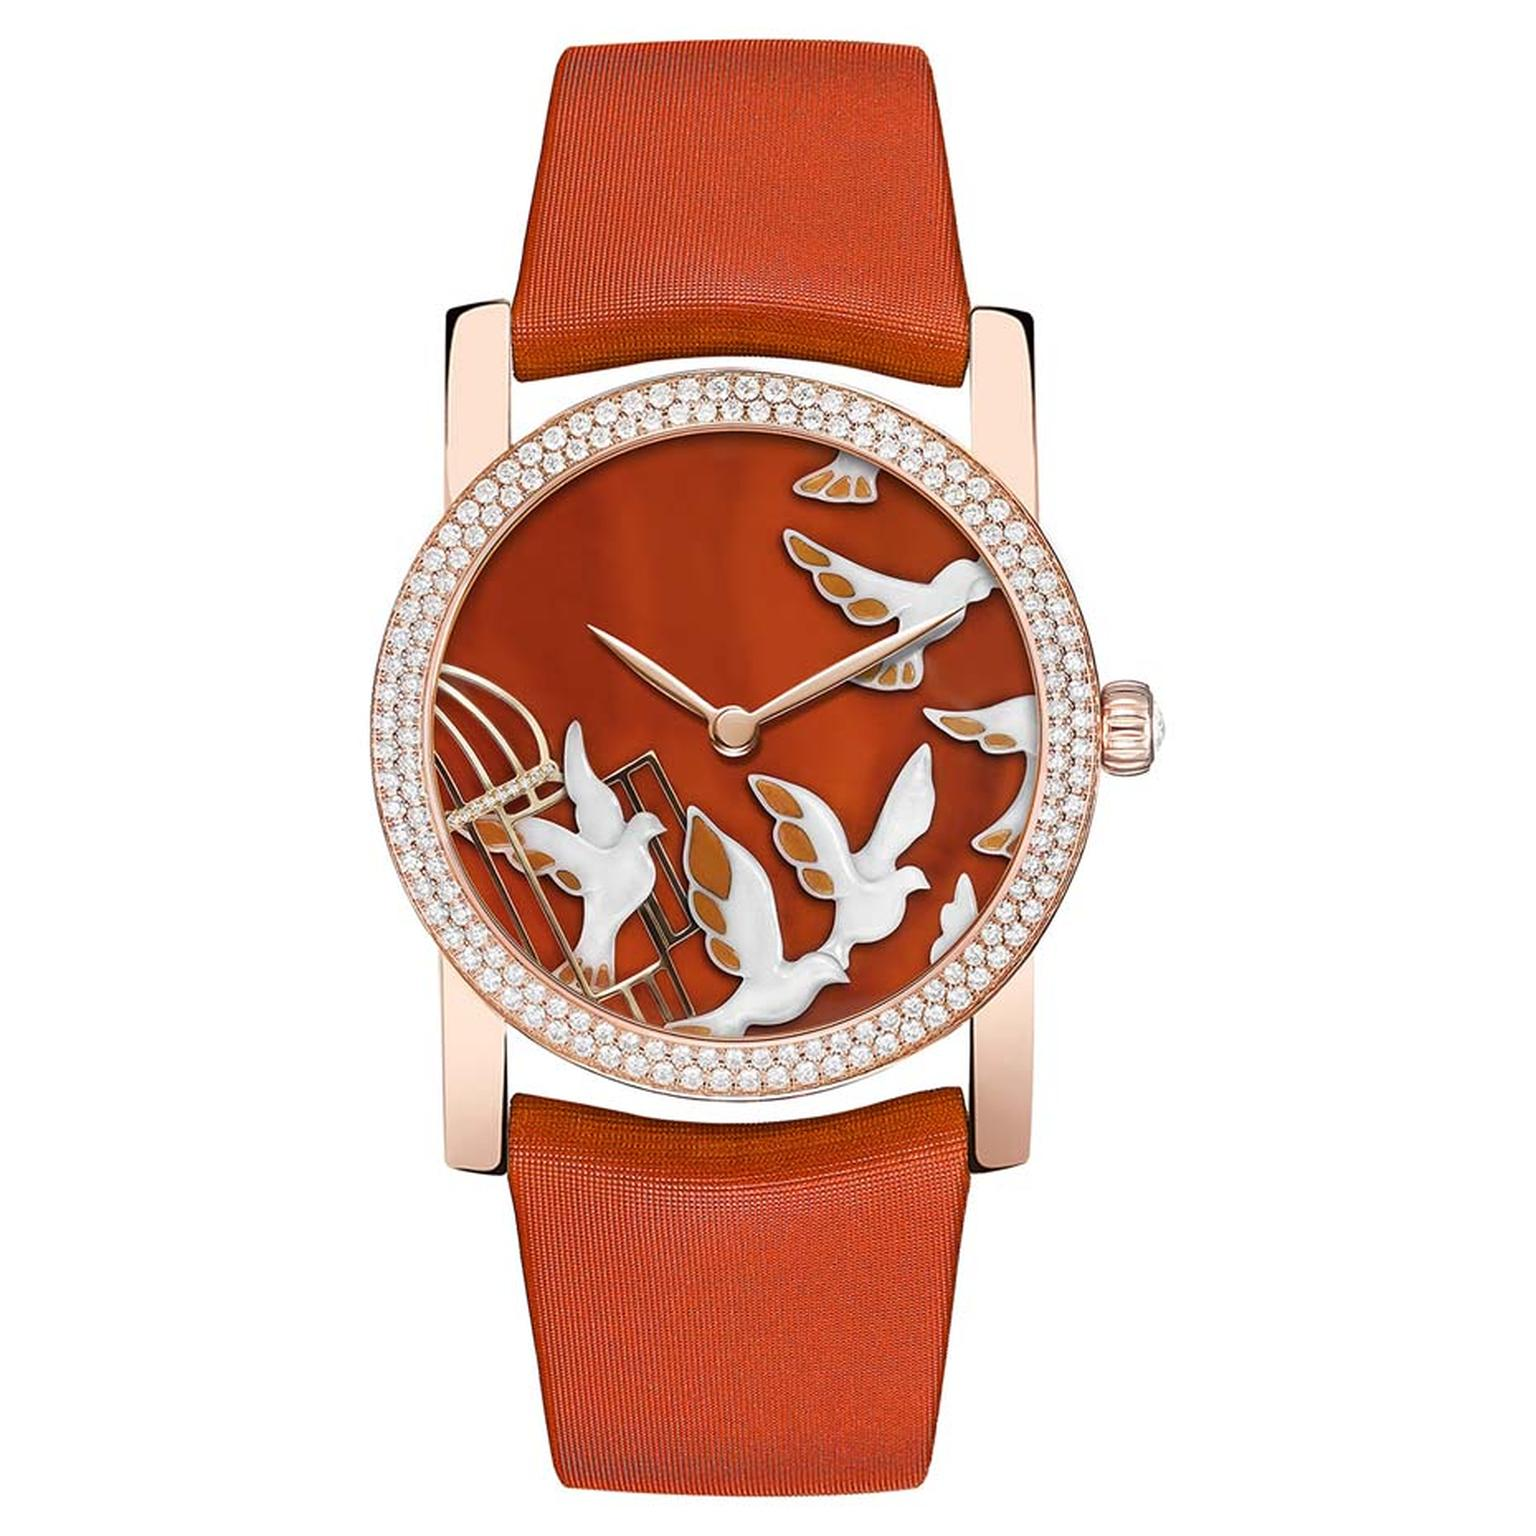 Chaumet's Attrape-moi…si tu m'aimes collection watch dial displays a group of doves sculpted from white agate